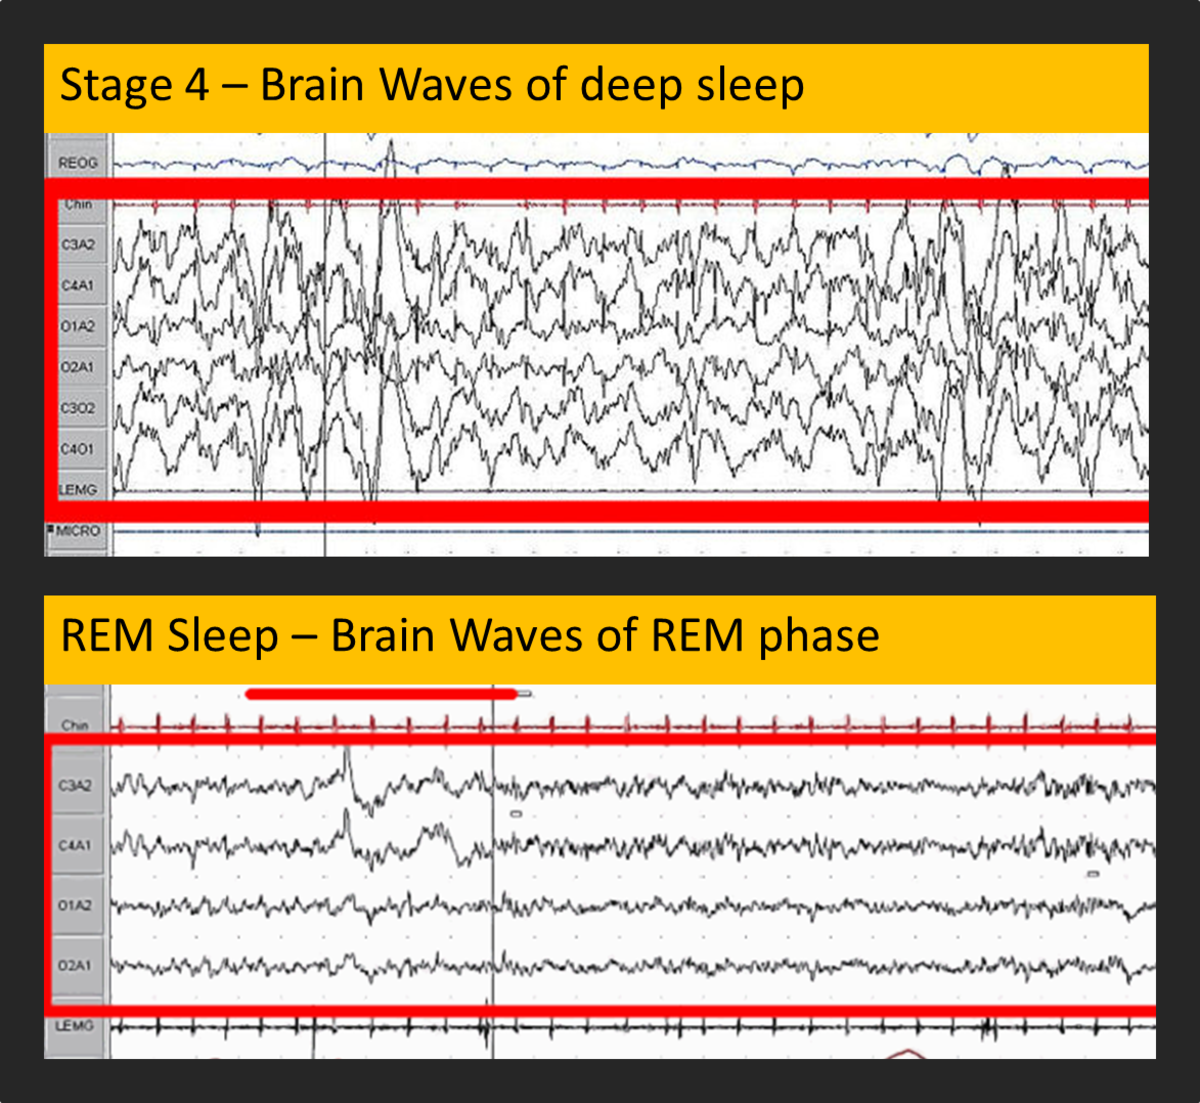 30 seconds of EEG data for patients in Stage 4 sleep (top) and REM sleep (bottom)